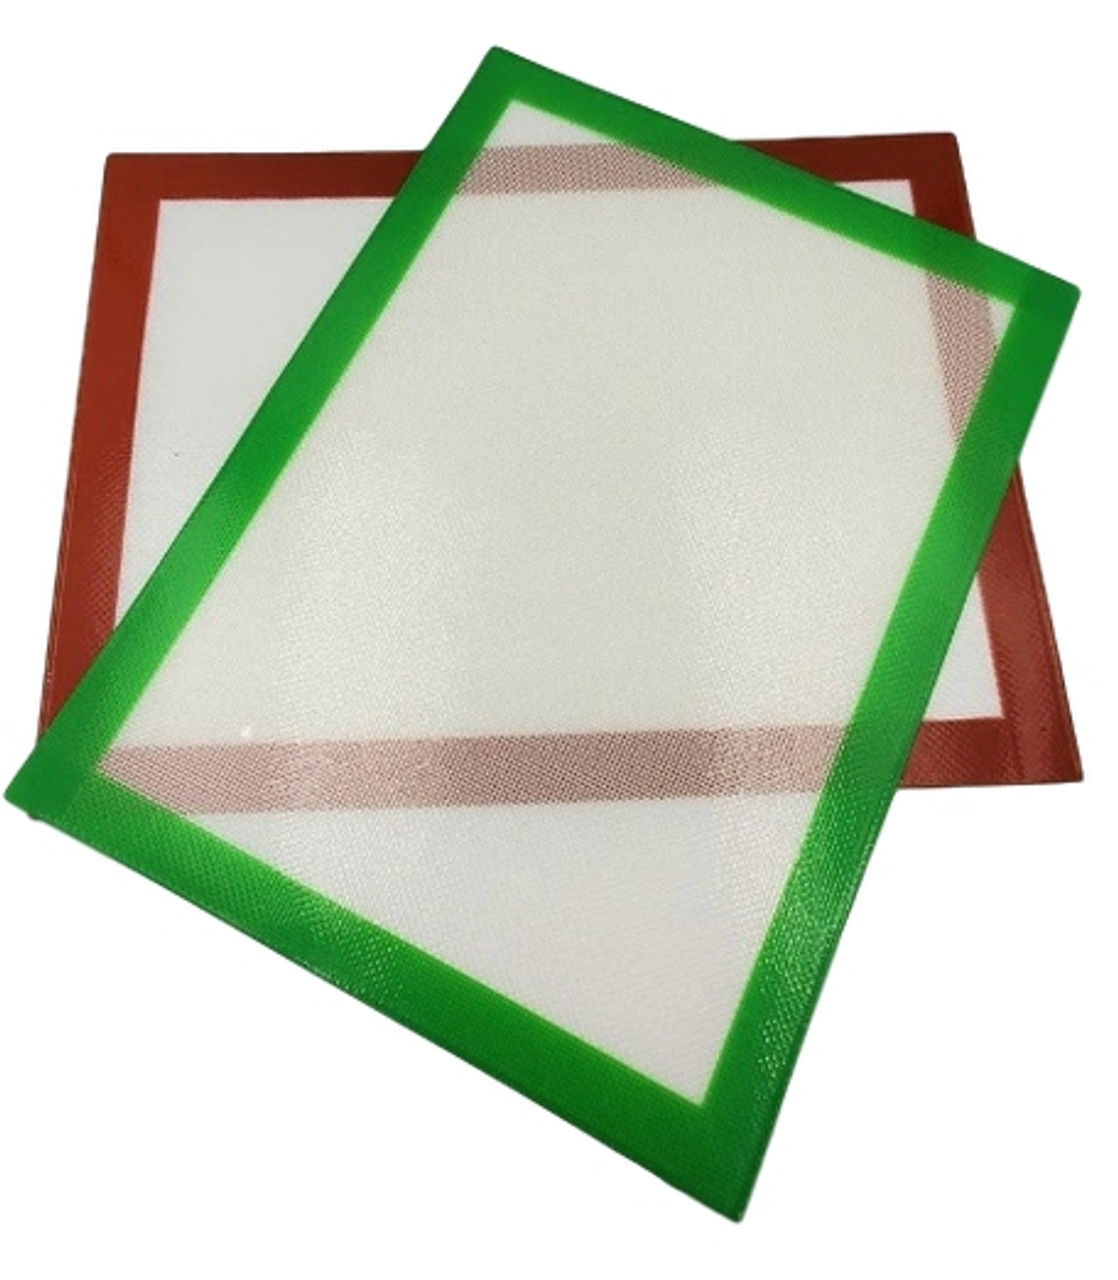 Silicone Dab Mat 16 inch by 11.5 inch HUGE!!